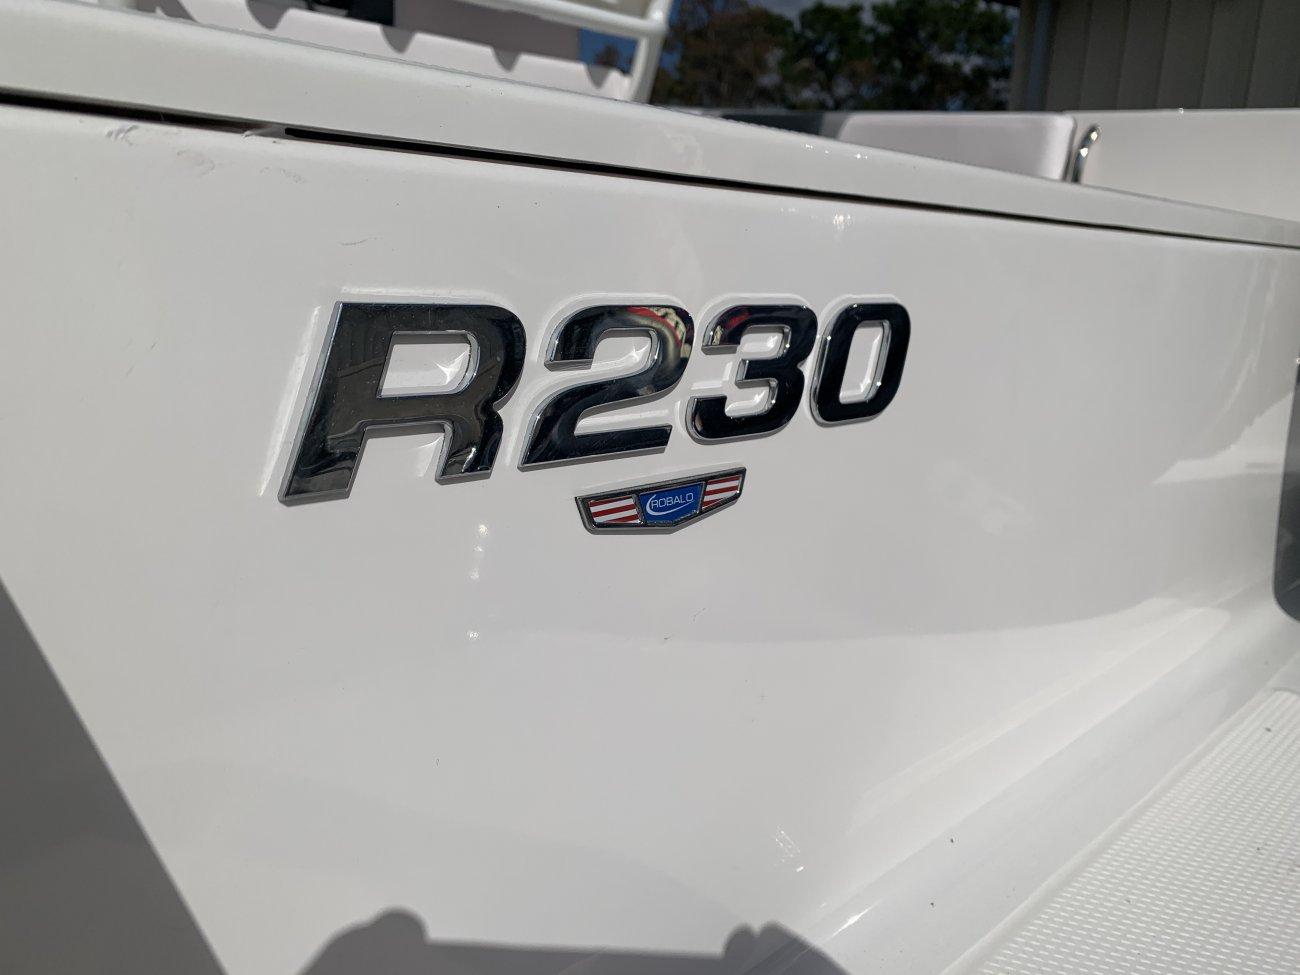 A 230 Center Console is a Power and could be classed as a Bowrider, Center Console, Fish and Ski, Freshwater Fishing, High Performance, Saltwater Fishing, Runabout,  or, just an overall Great Boat!